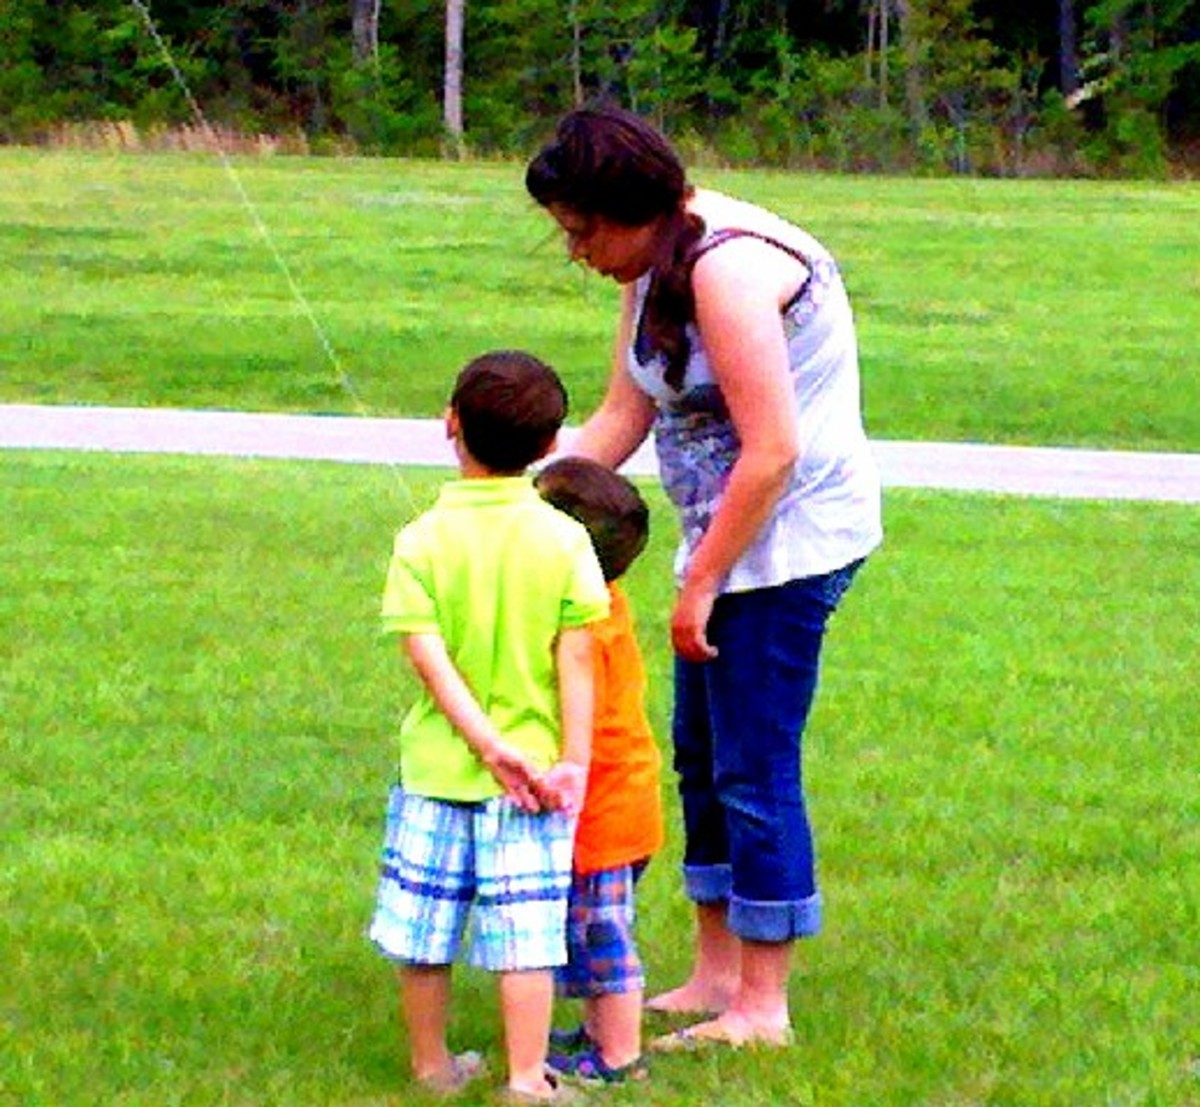 Money saving tips for families looking to cut the cost of babysitting service.